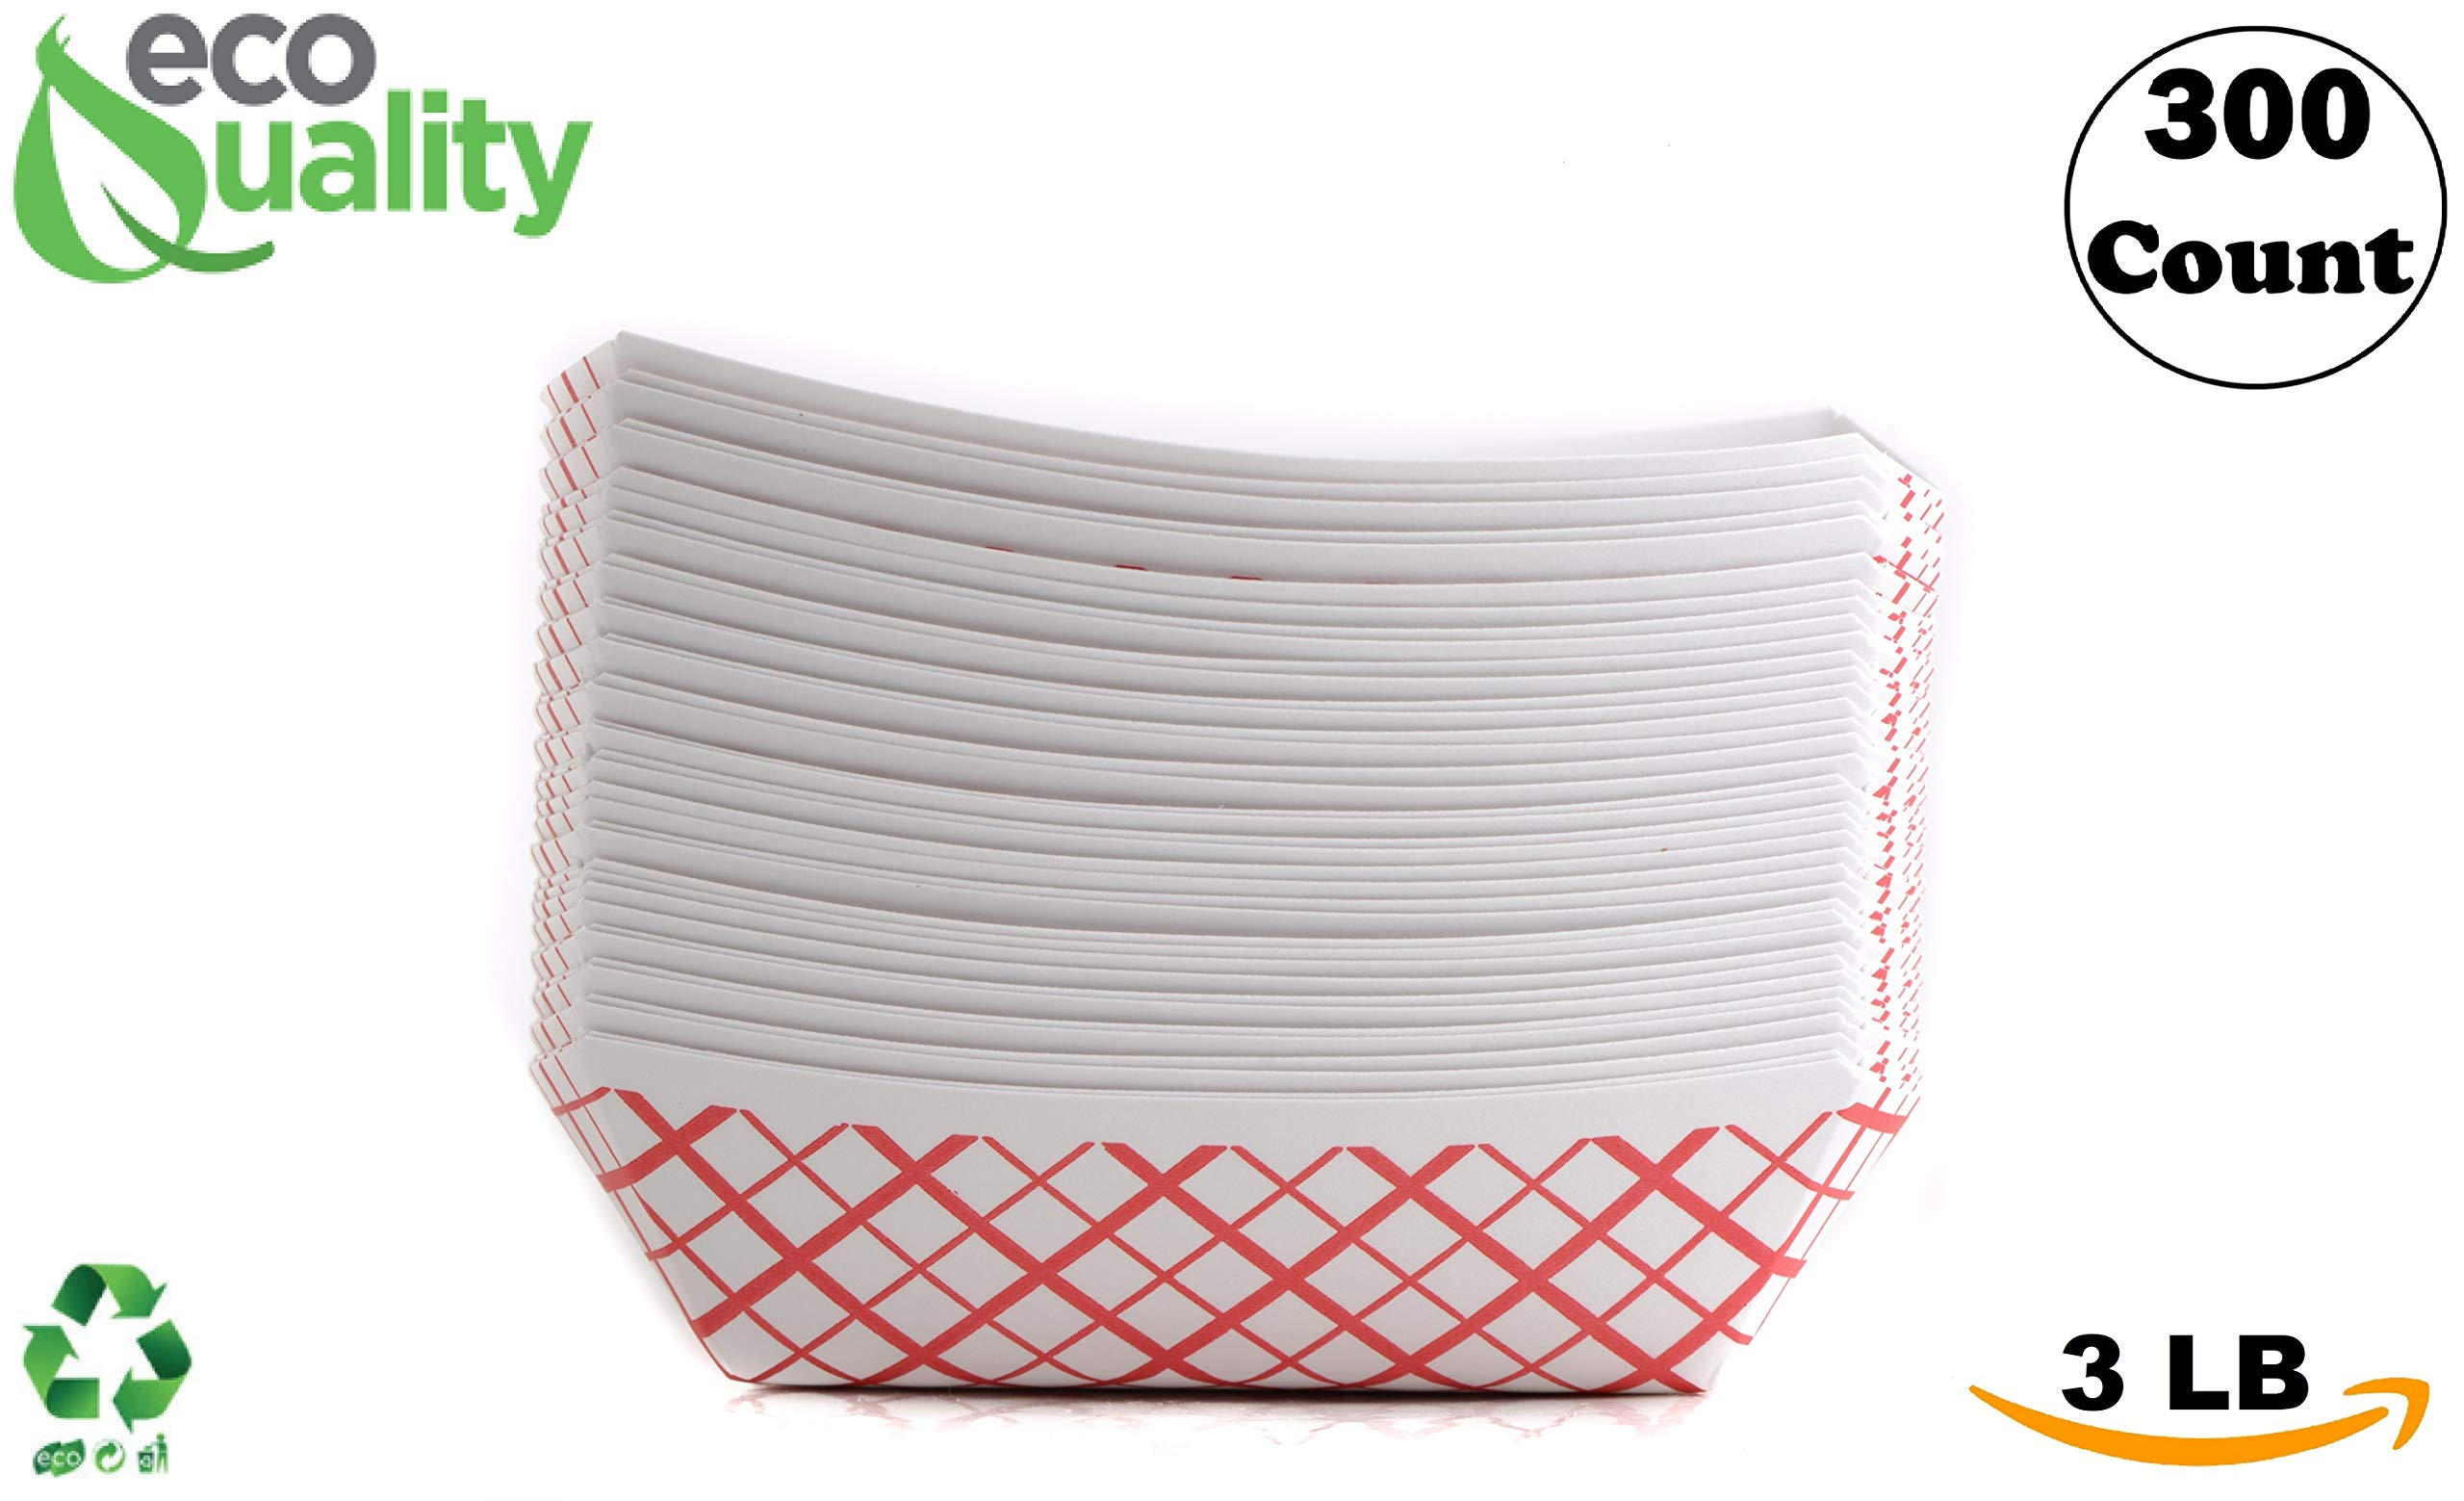 300ct Heavy Duty Disposable Paper Food Tray (3 LB) - Red Check Food Tray, USA MADE, Recyclable, Biodegradable, Compostable, Great for Picnics, Carnivals, Party, Camping, BBQ, Restaurants, Fries